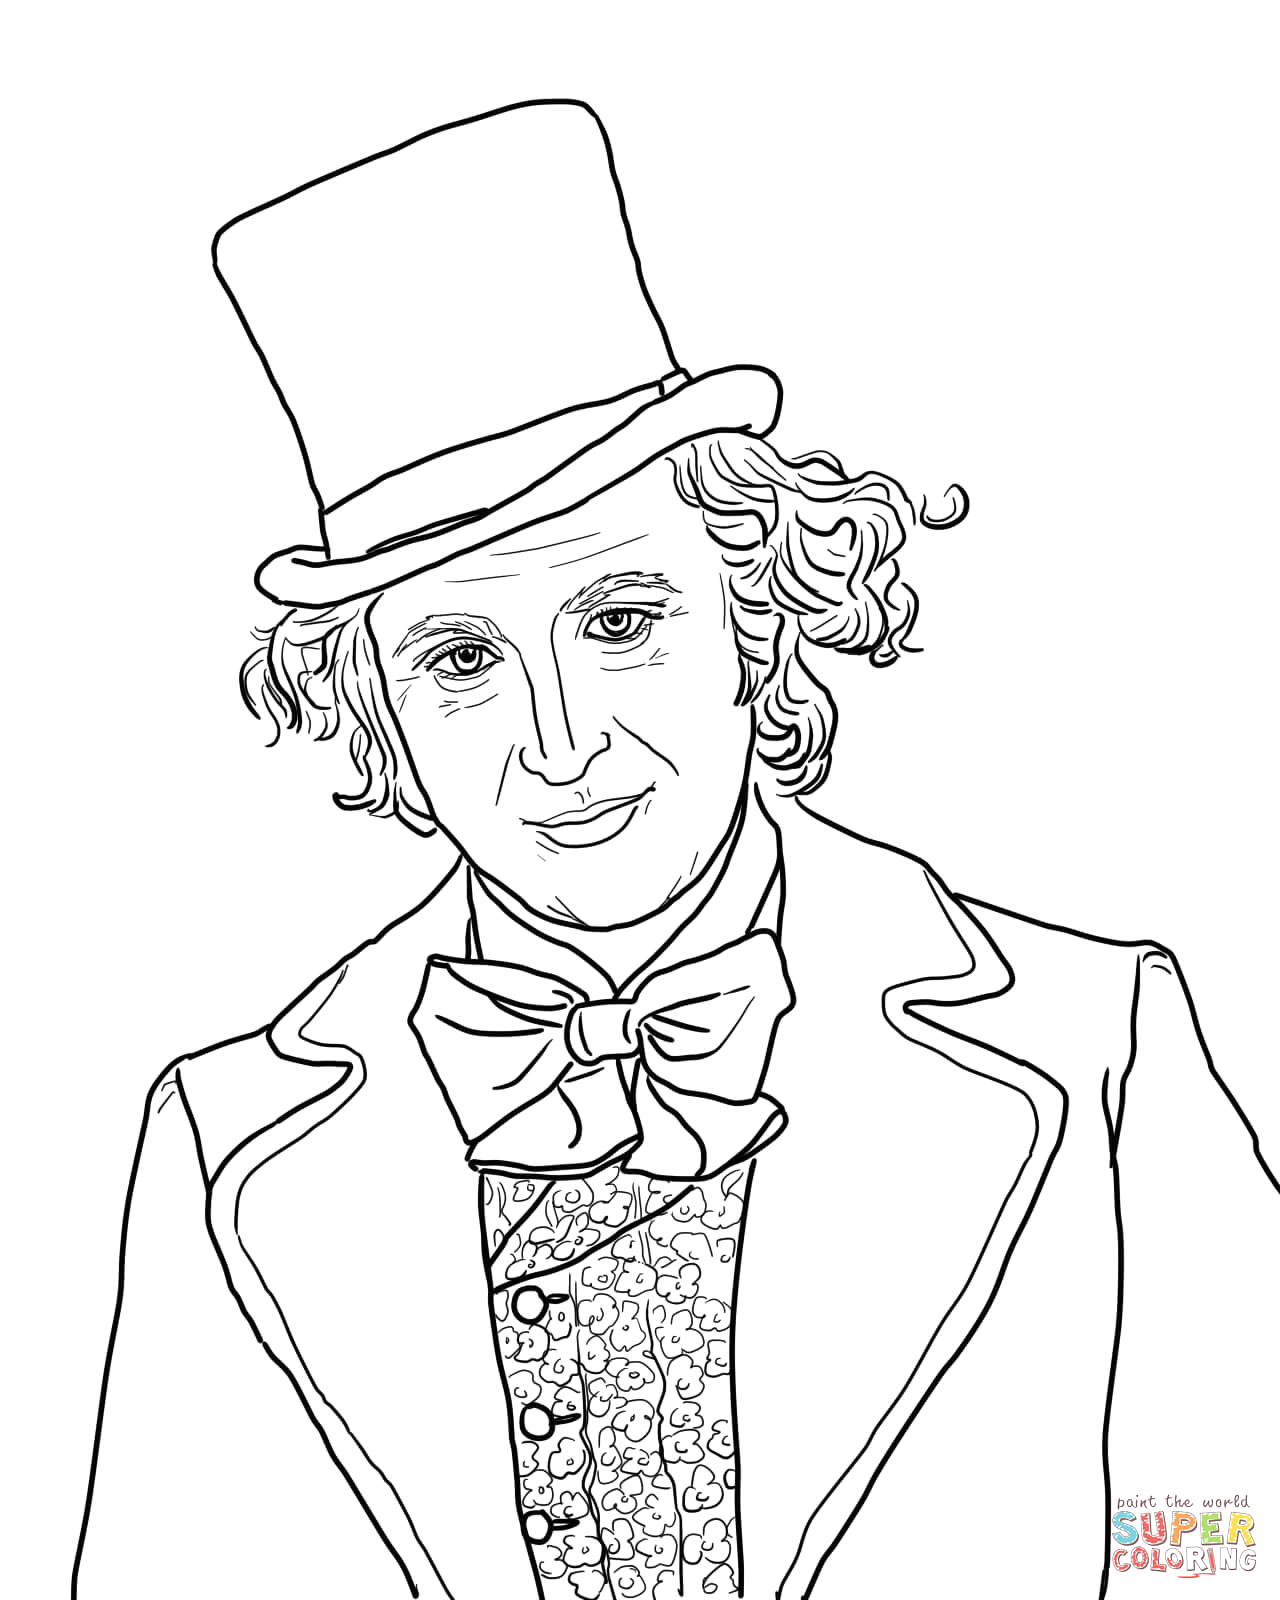 Charlie and the Chocolate Factory Coloring Pages Free Charlie and the Chocolate Factory Coloring Pages